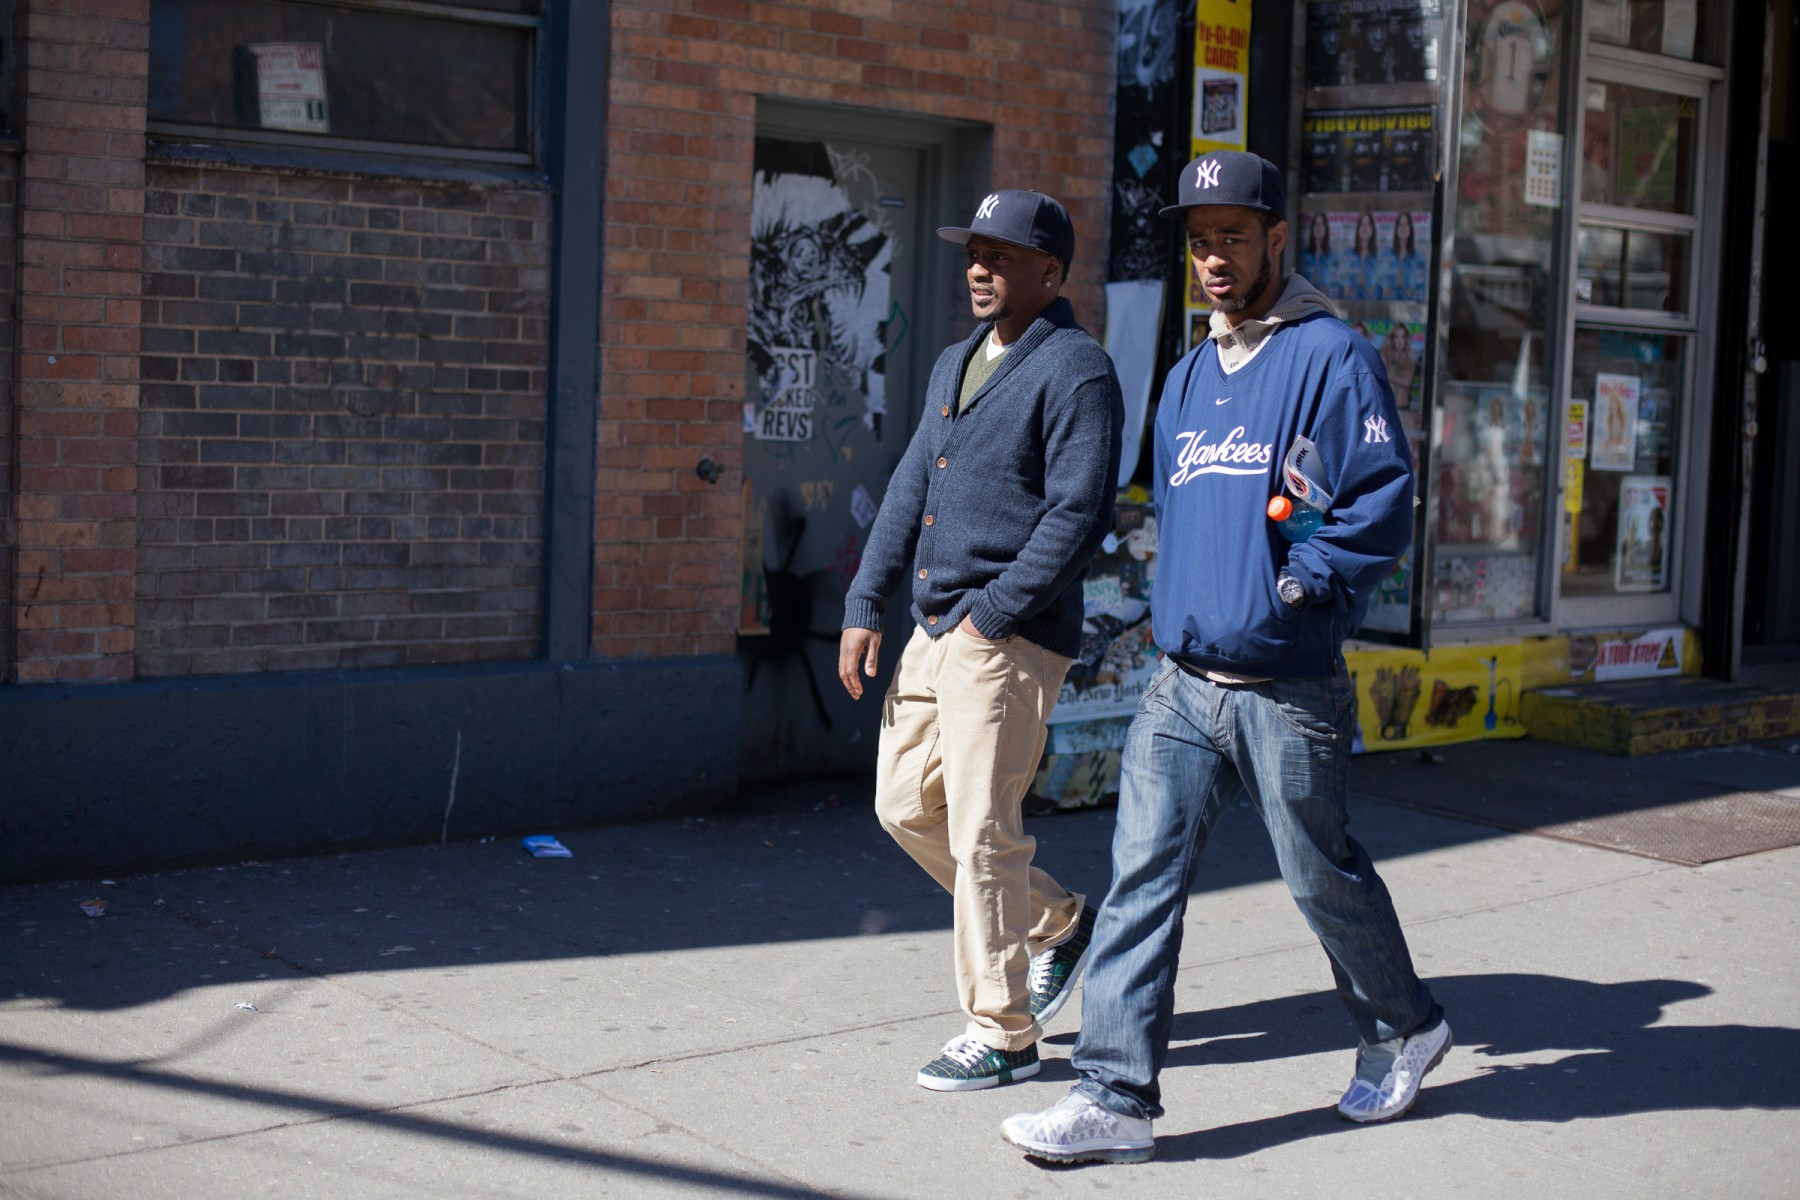 Yankees fans on the streets of New York City.